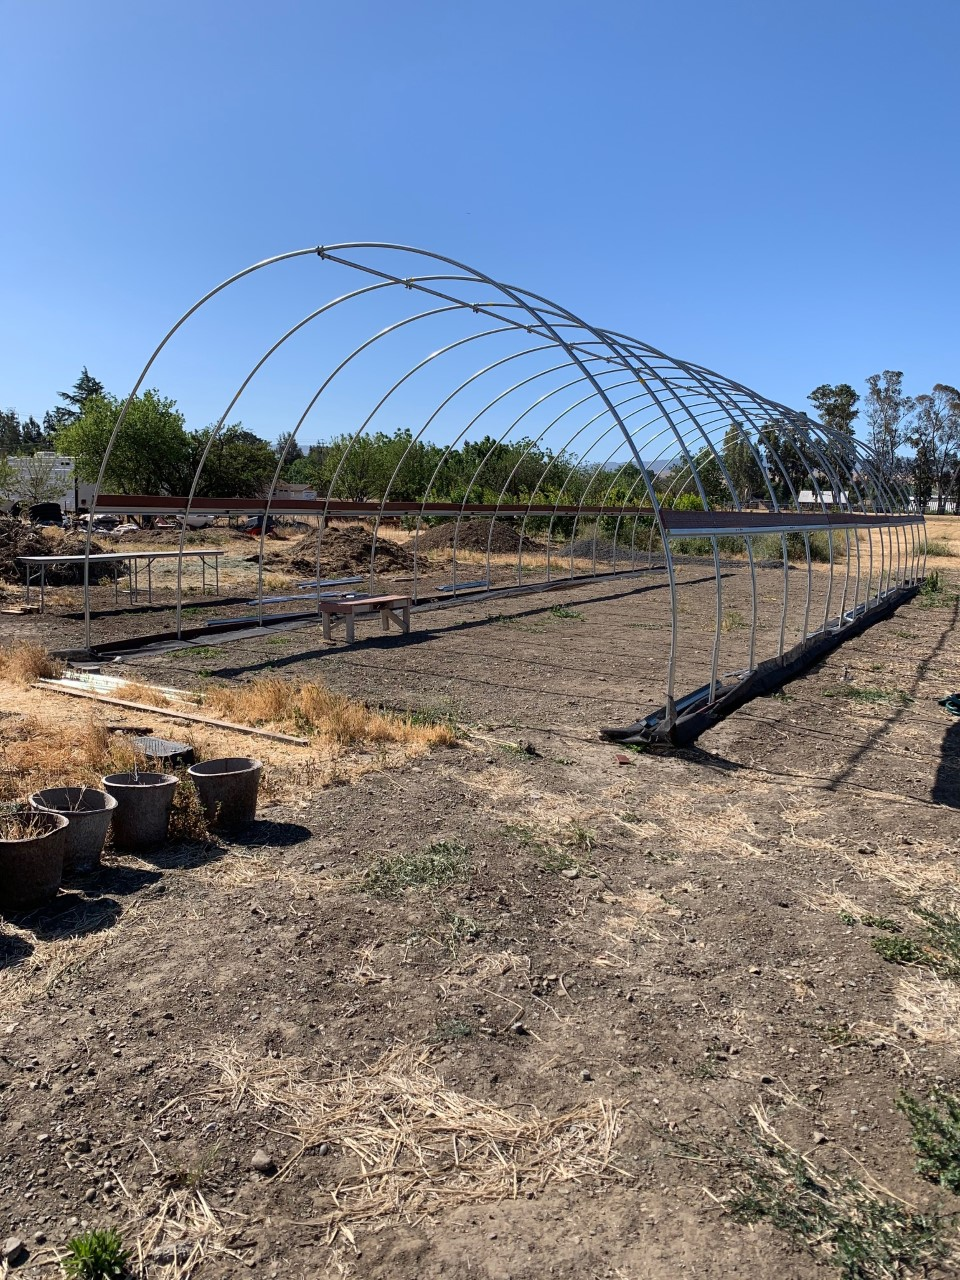 Construction of the new hoop house at Fertile GroundWorks